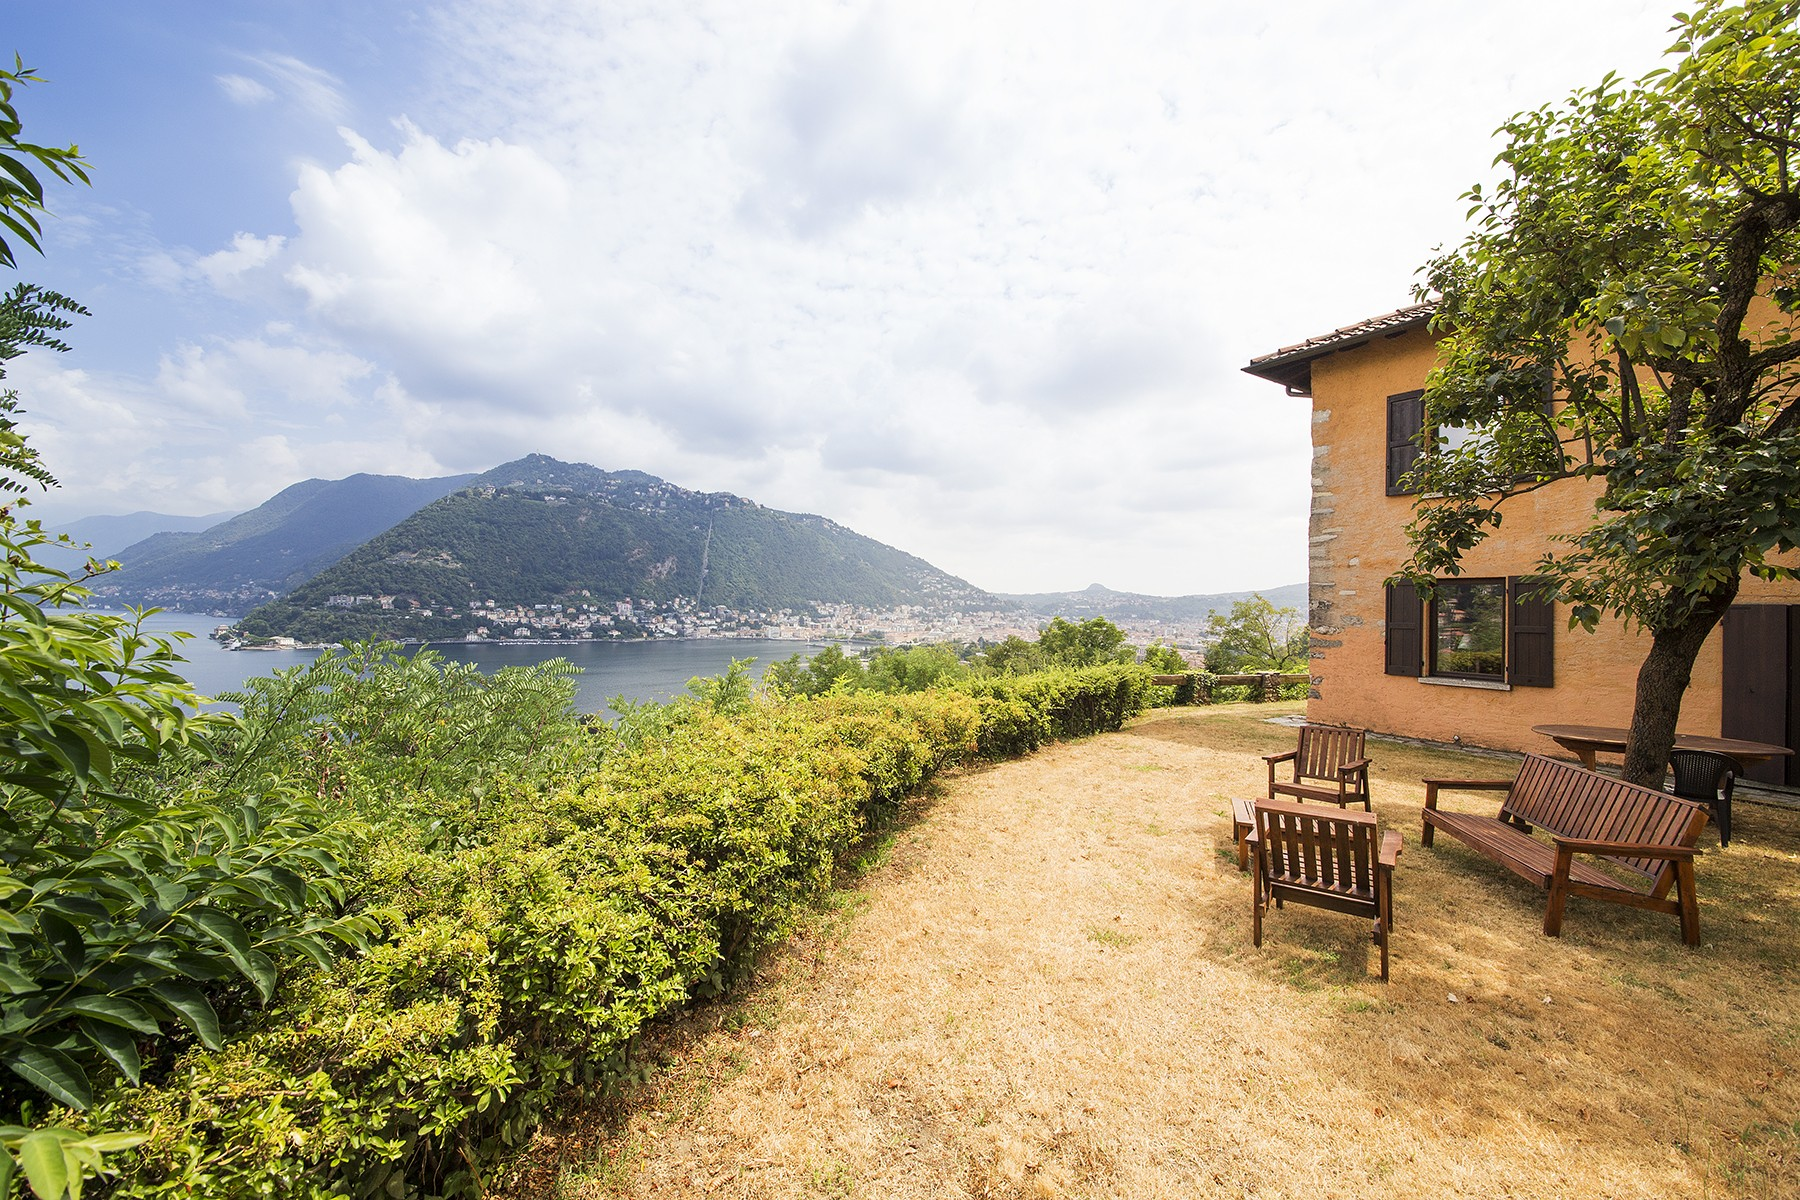 Single Family Home for Sale at Charming villa on the hills of Como with breath-taking views Via Imbonati Como, 22100 Italy